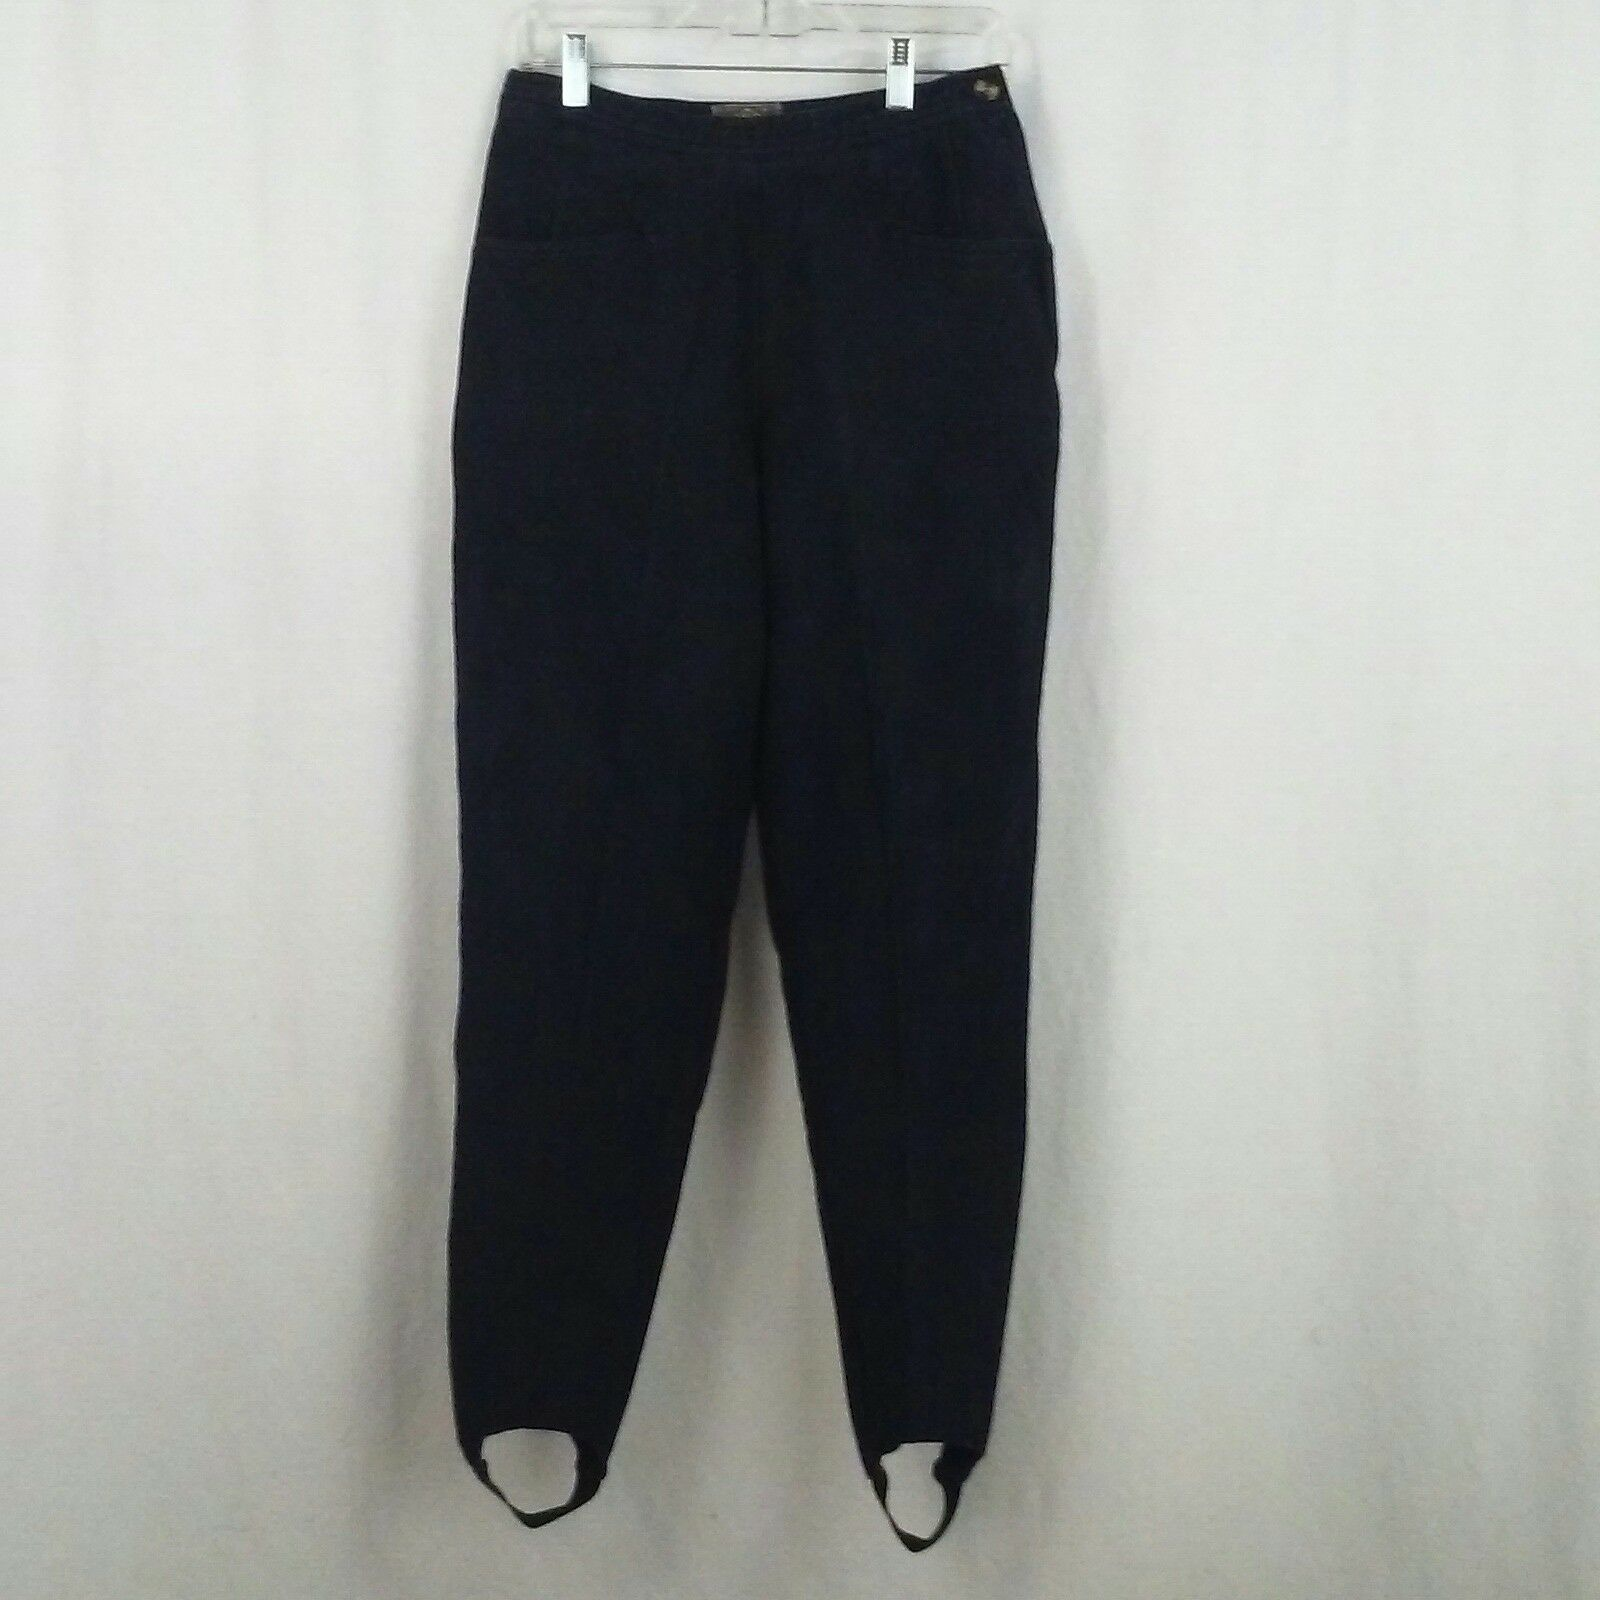 EXP Jeans womens leggings Size 11 12 Stirrup legs Skinny Stretch Side zip